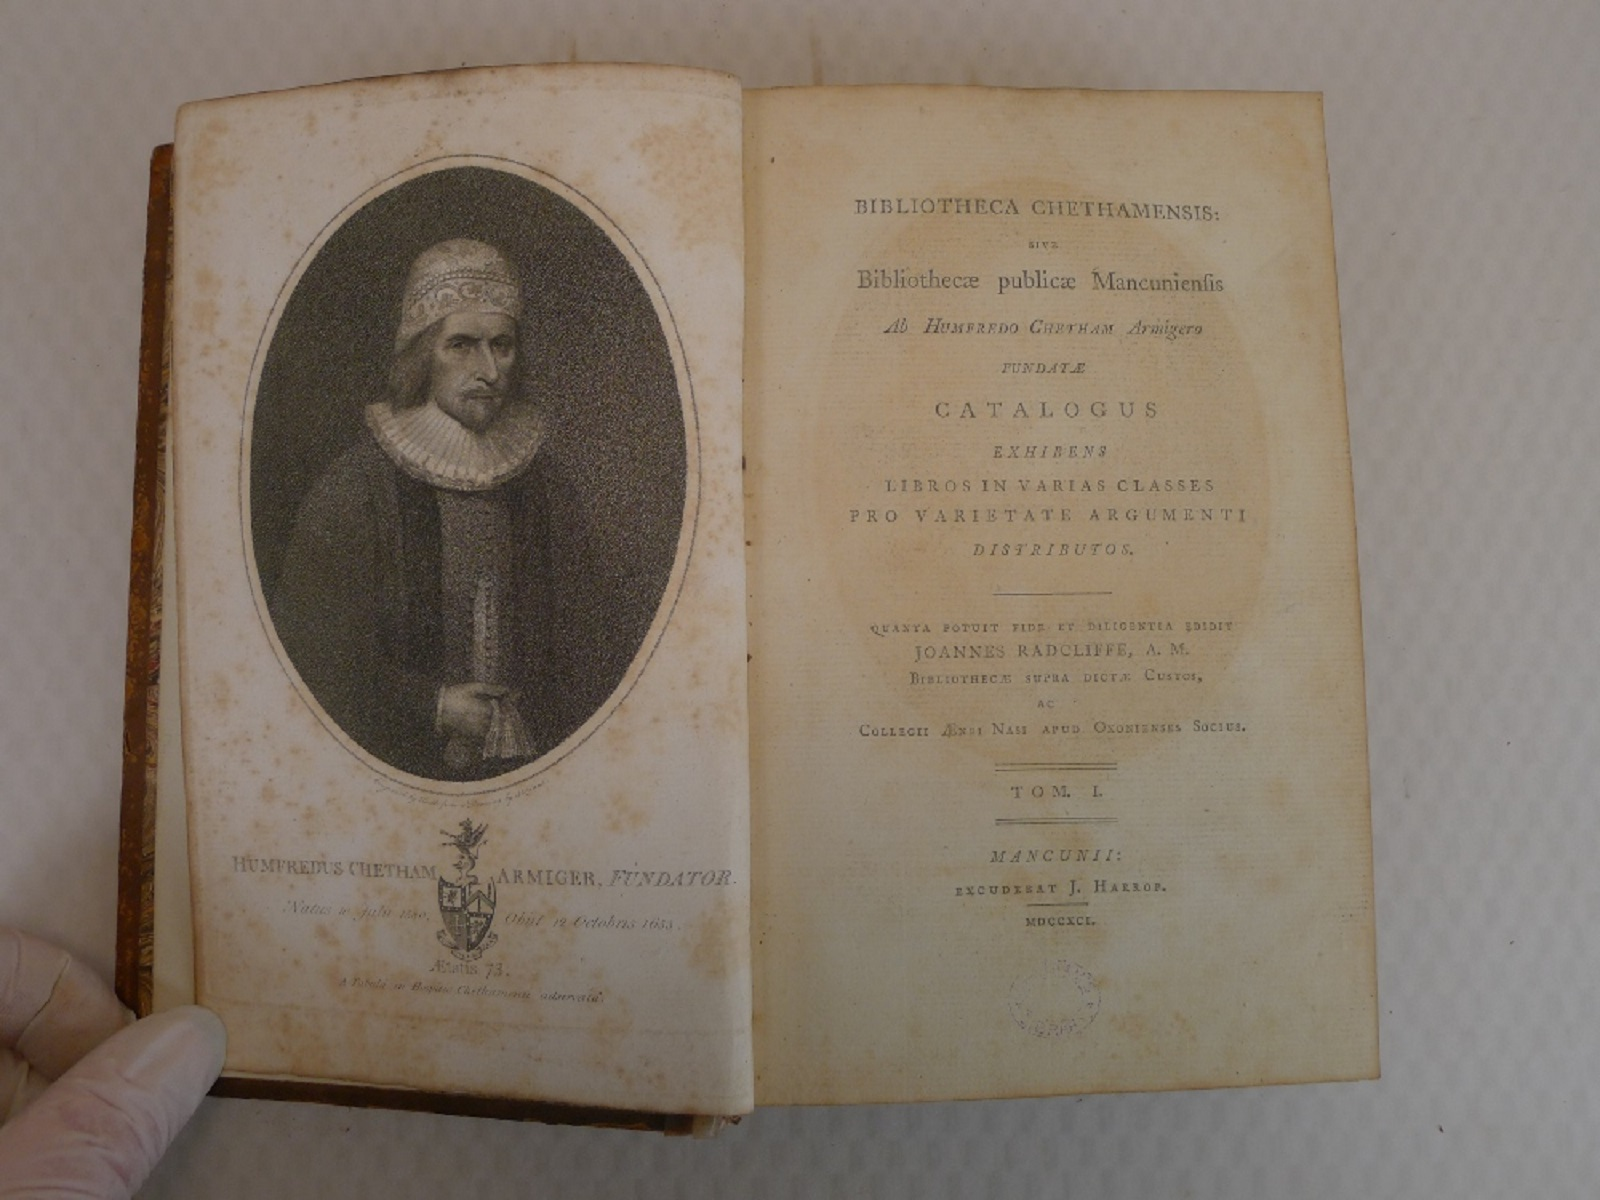 Volumes 1, 2, 3 and 6 of Bibliotheca Chethamensis (Catalogues of Books and Manuscripts) for the - Image 5 of 19